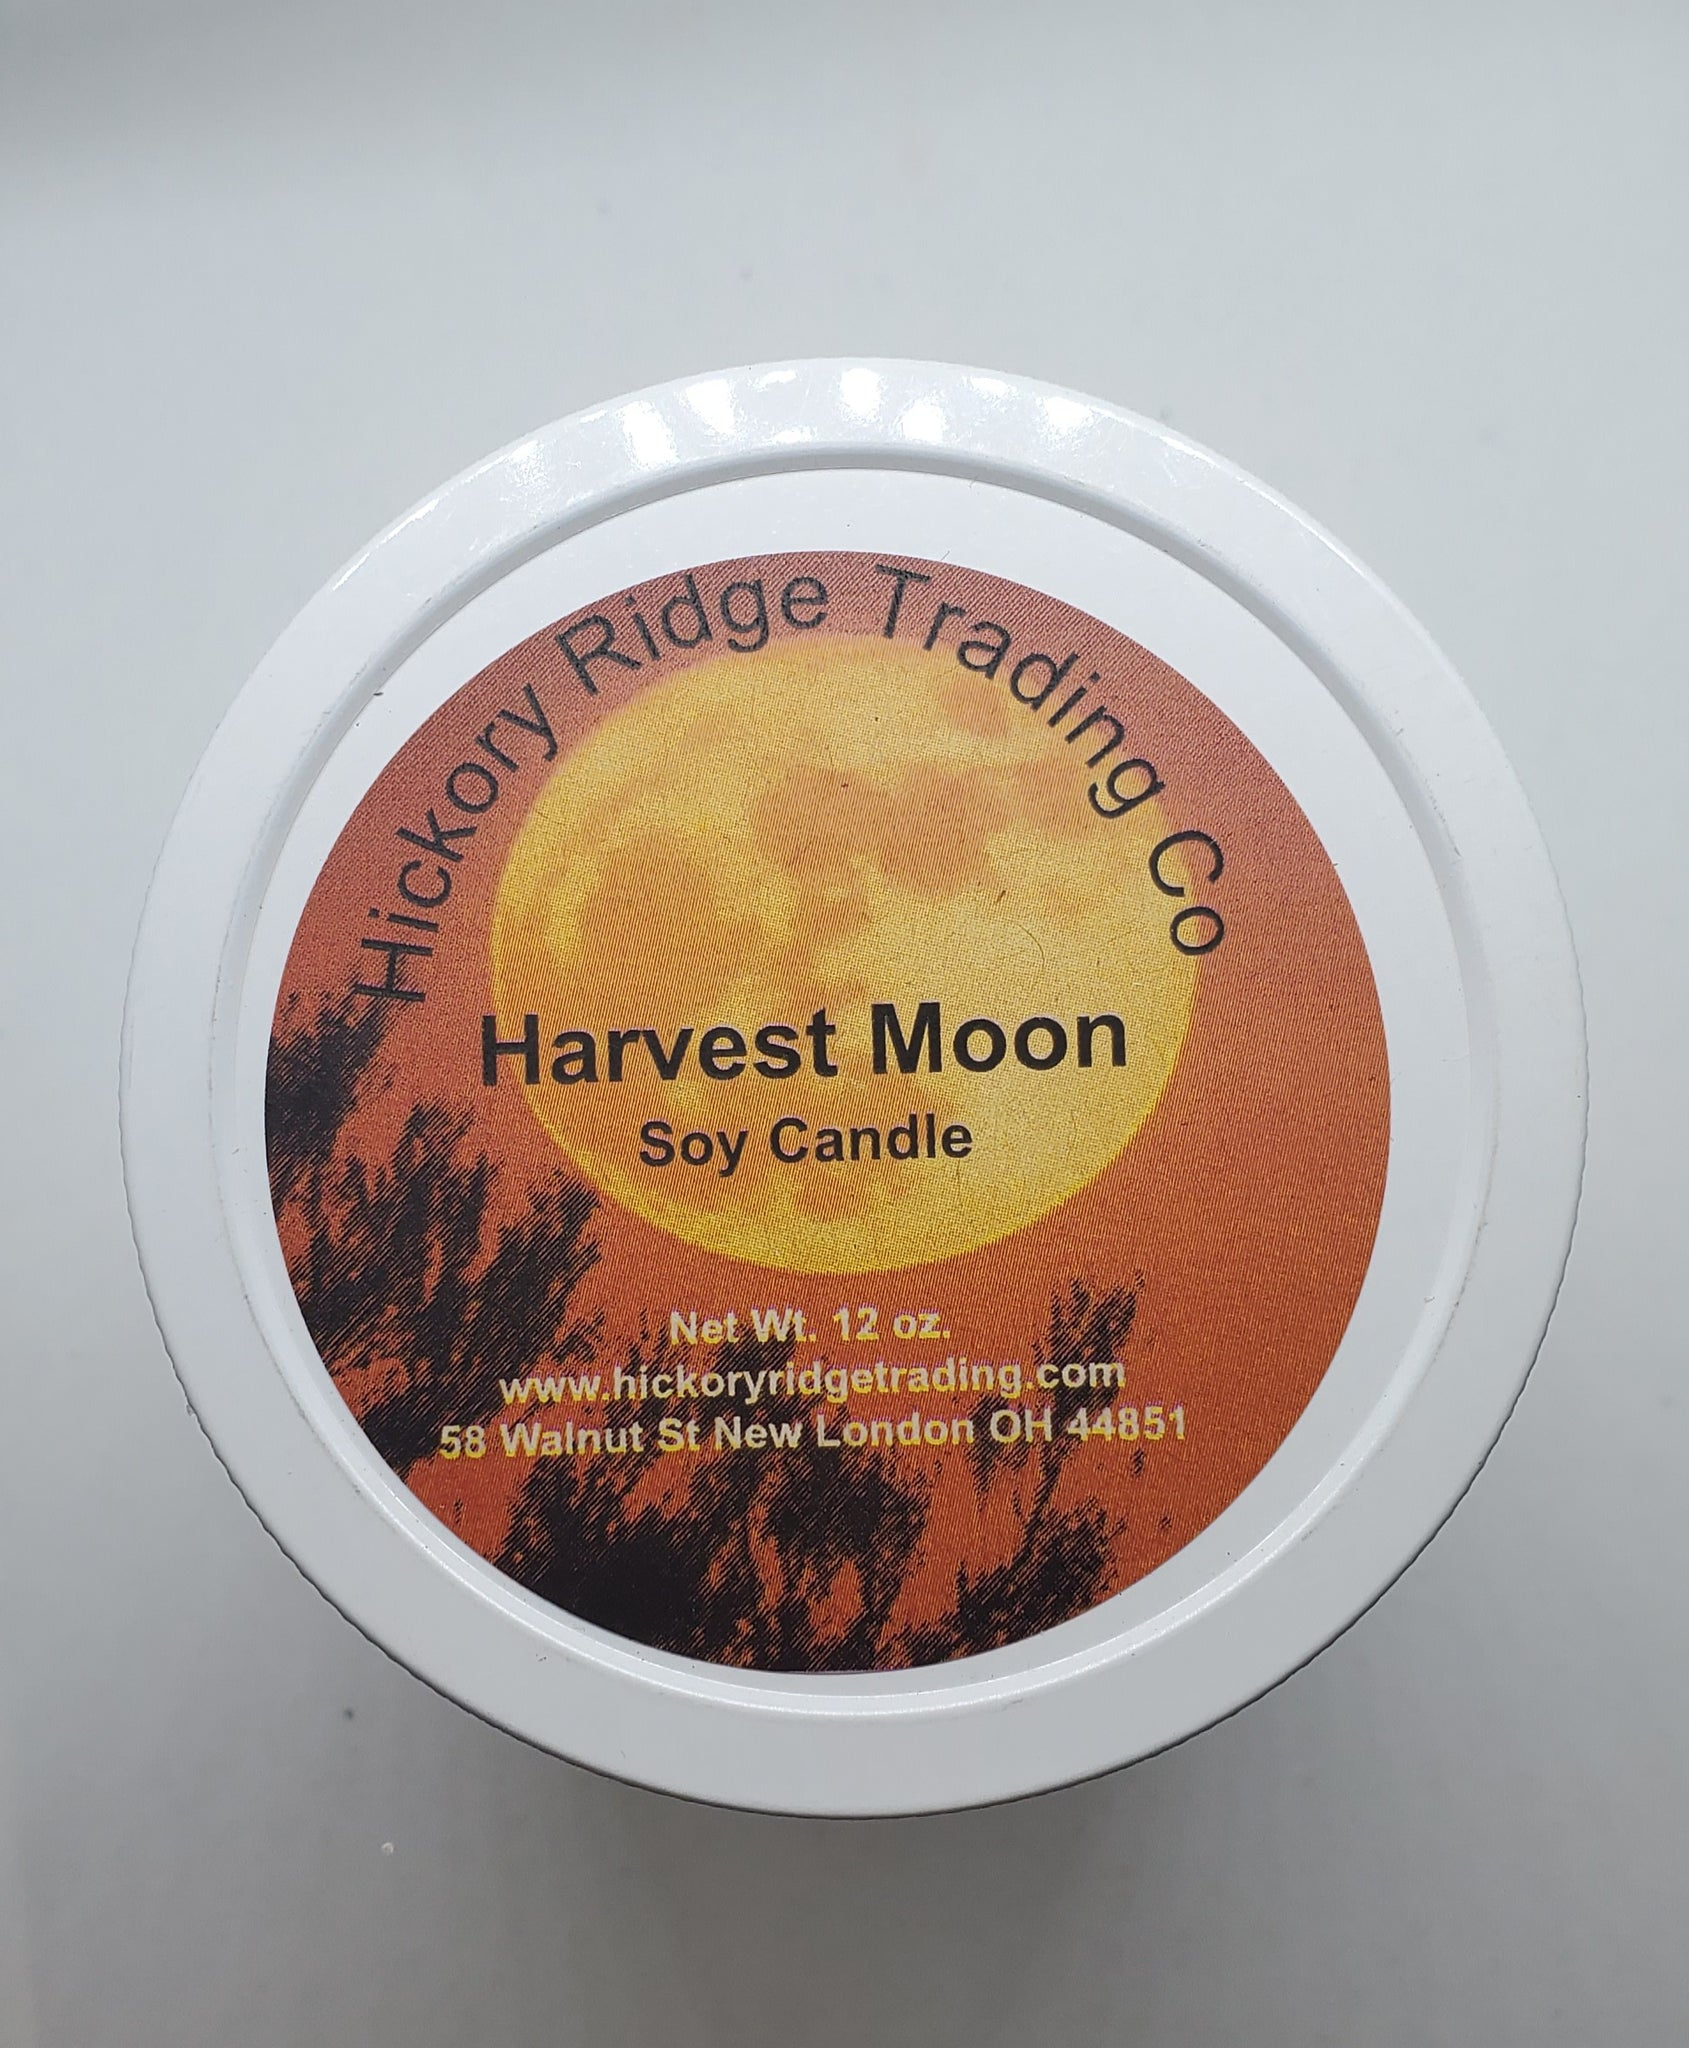 Harvest Moon 12 oz Soy Candle